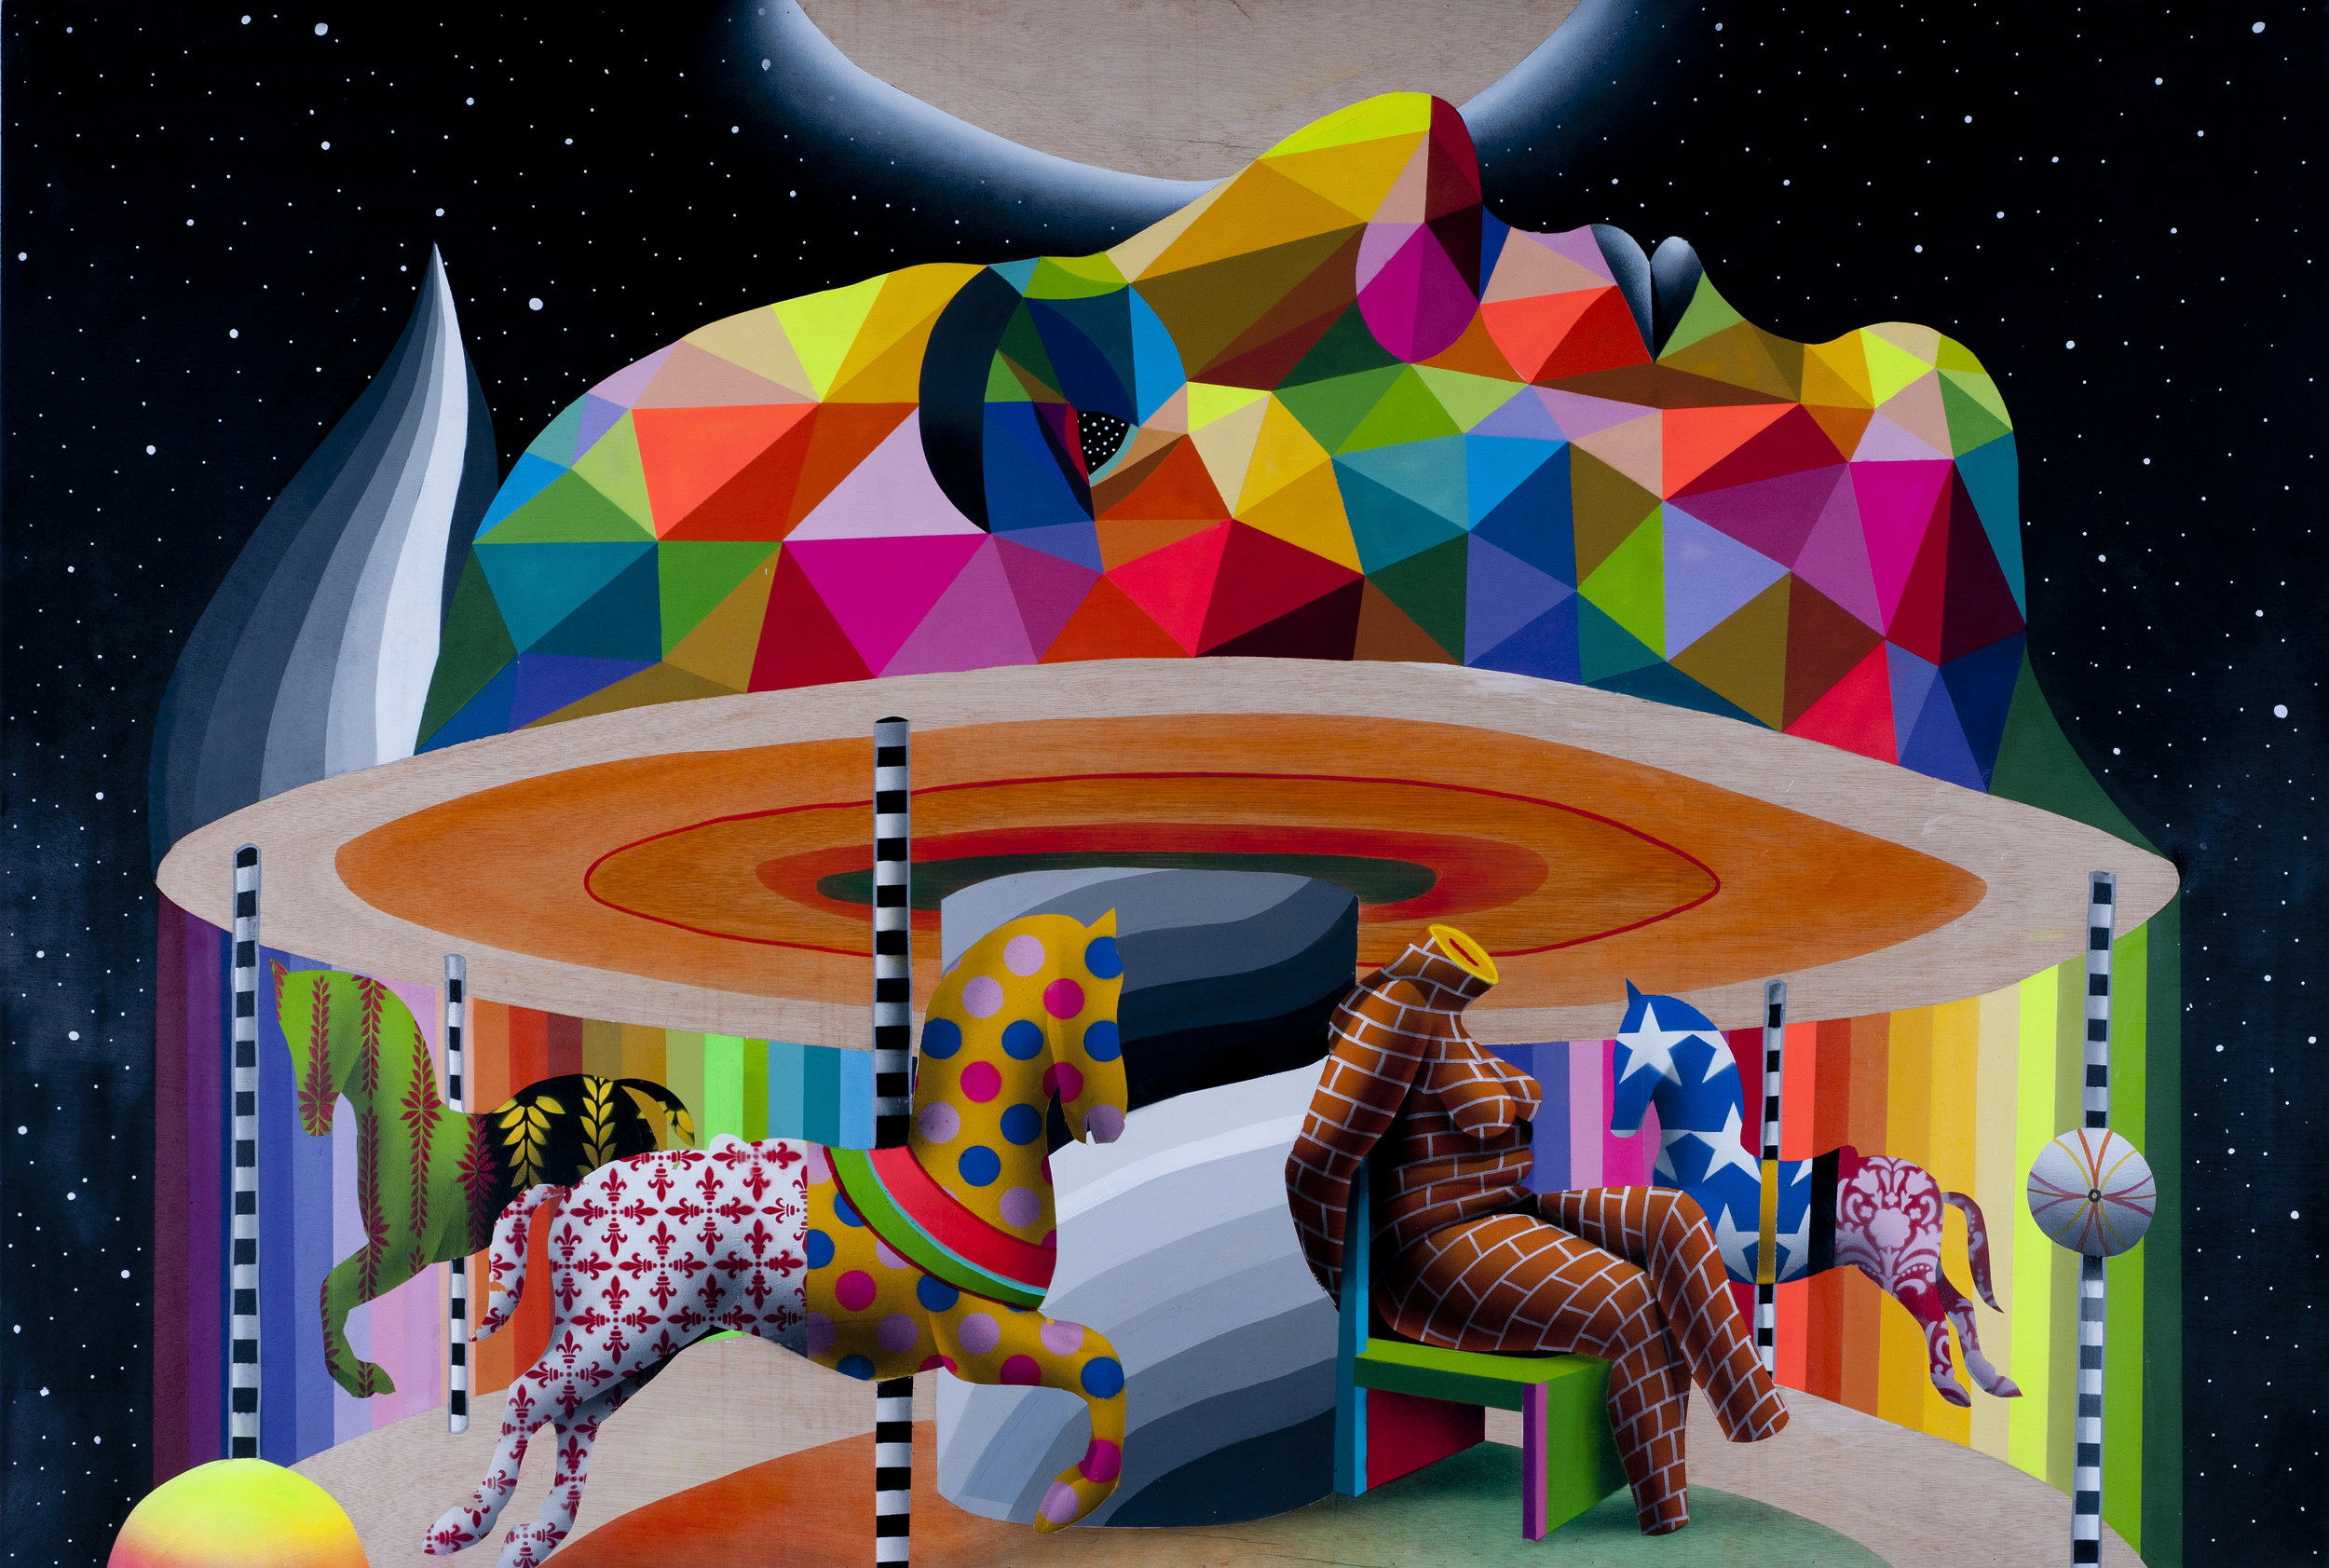 OKUDA  My Brain's Carrousel , 2016  Synthetic enamel on wood. Signed and dated on the left  48 x 72 in